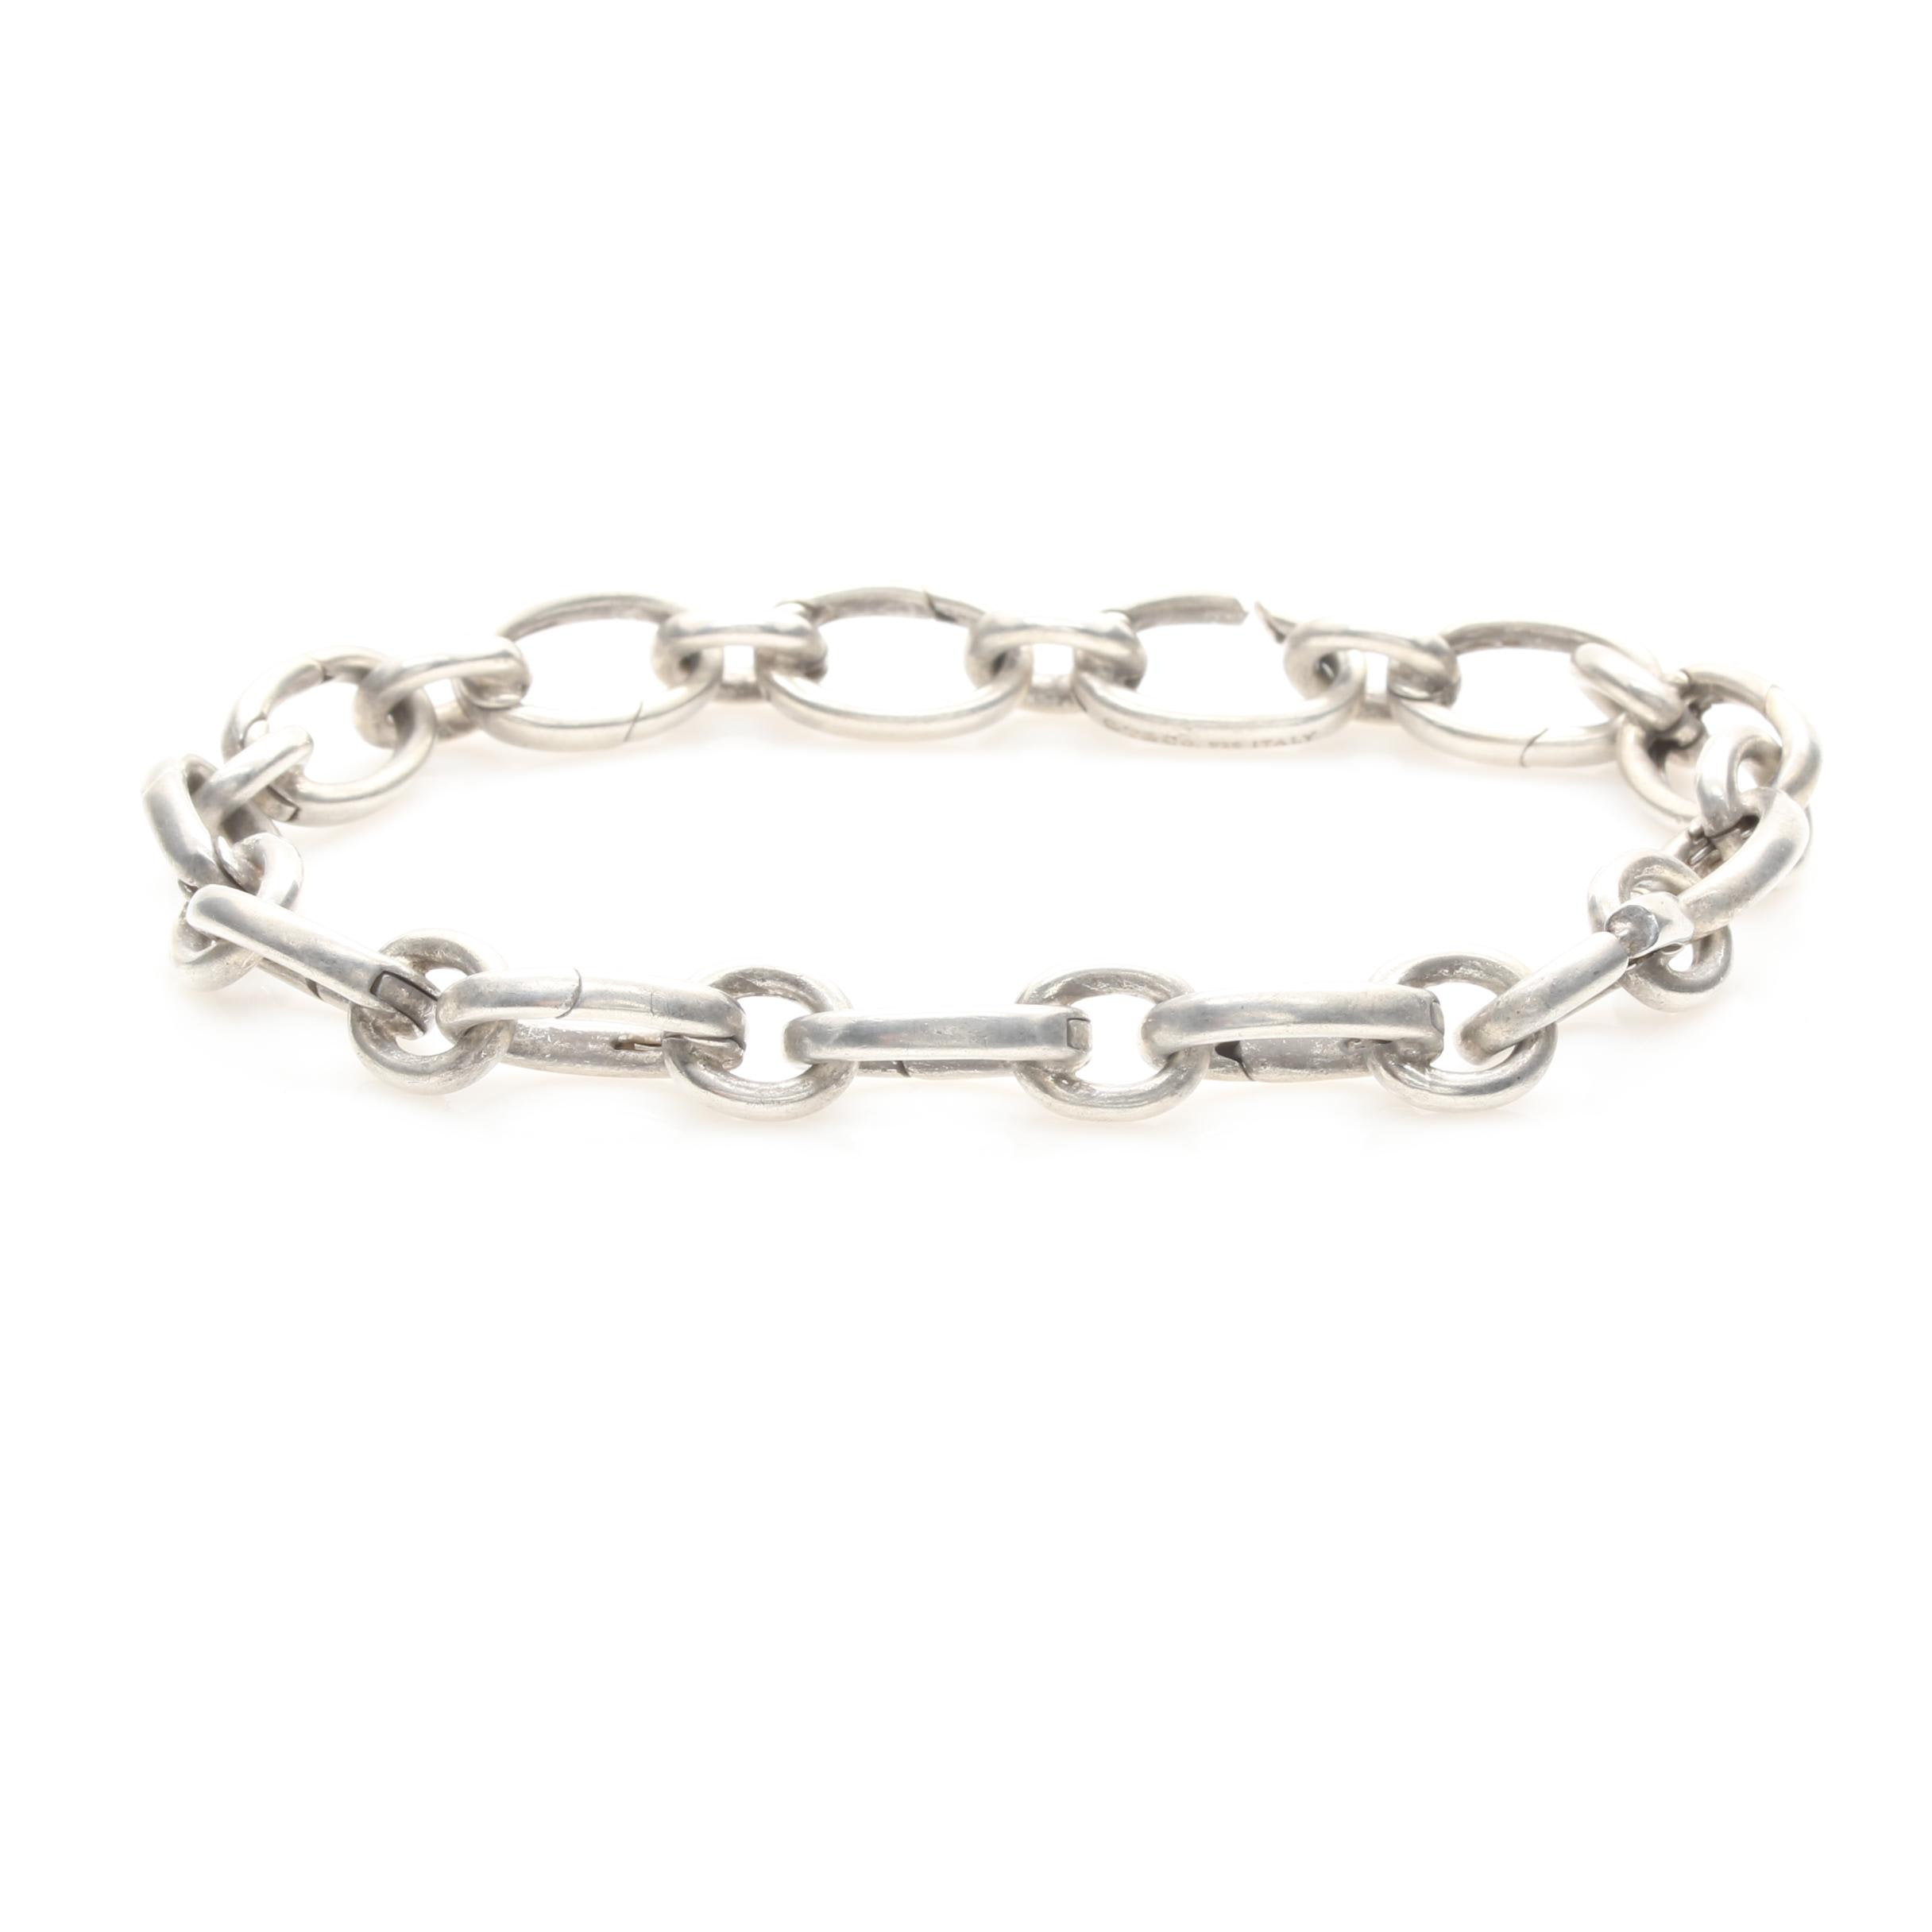 Tiffany & Co. Sterling Silver Clasping Link Charm Bracelet